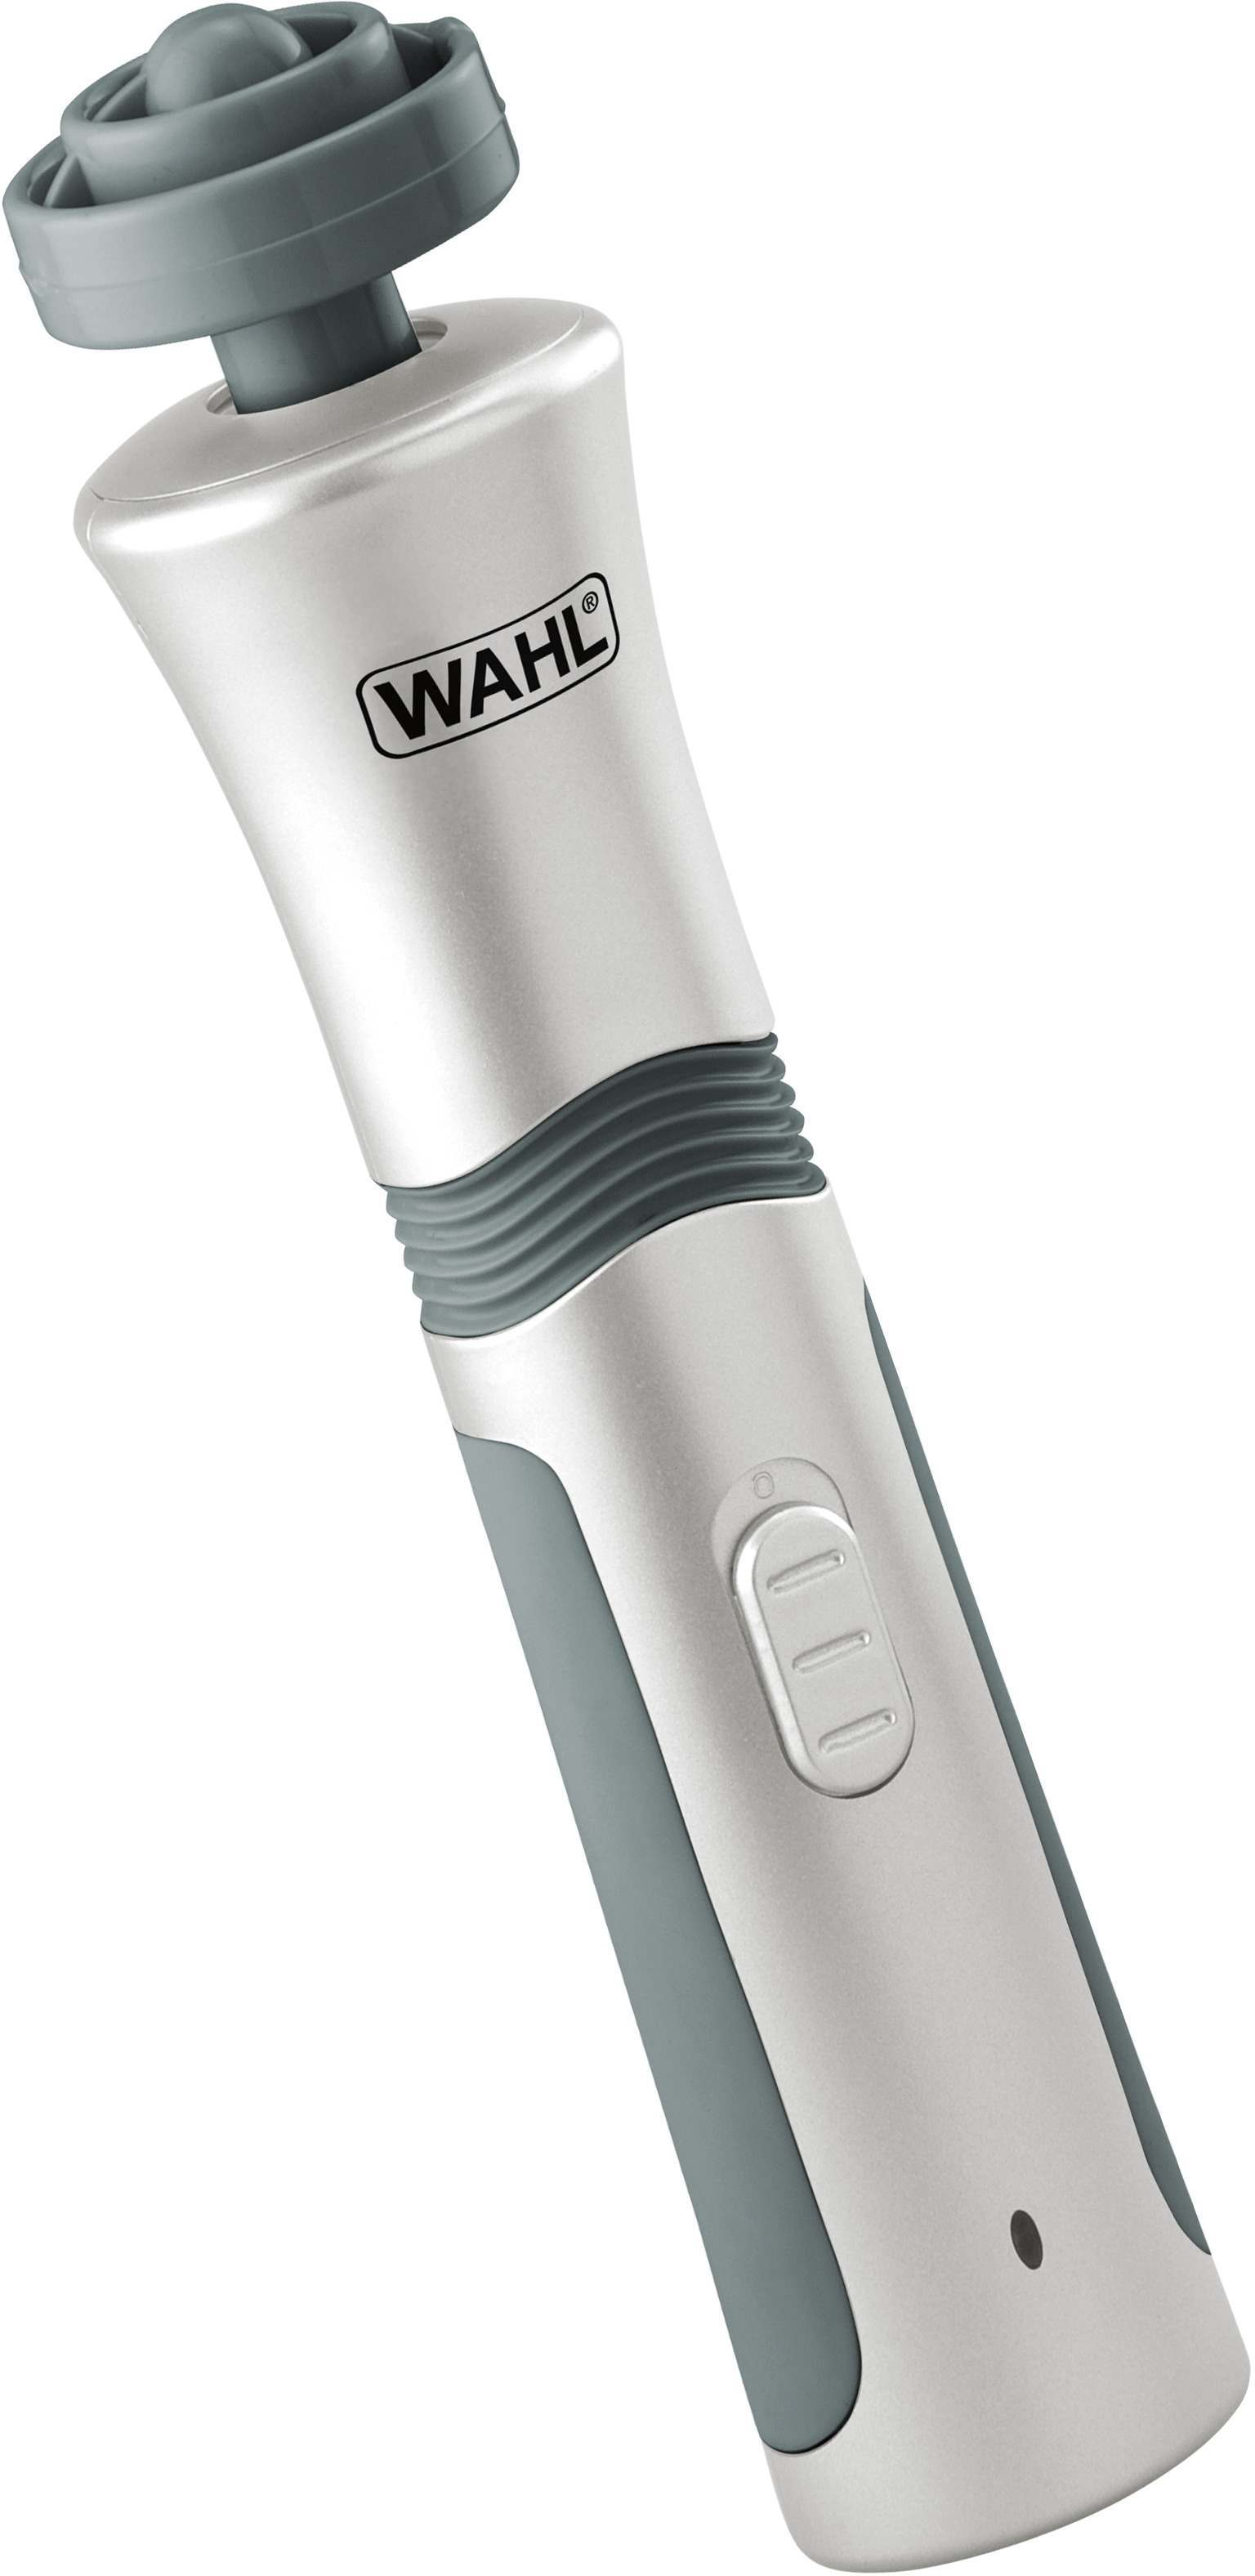 Wahl 4294-027 Flex Rechargeable Massager